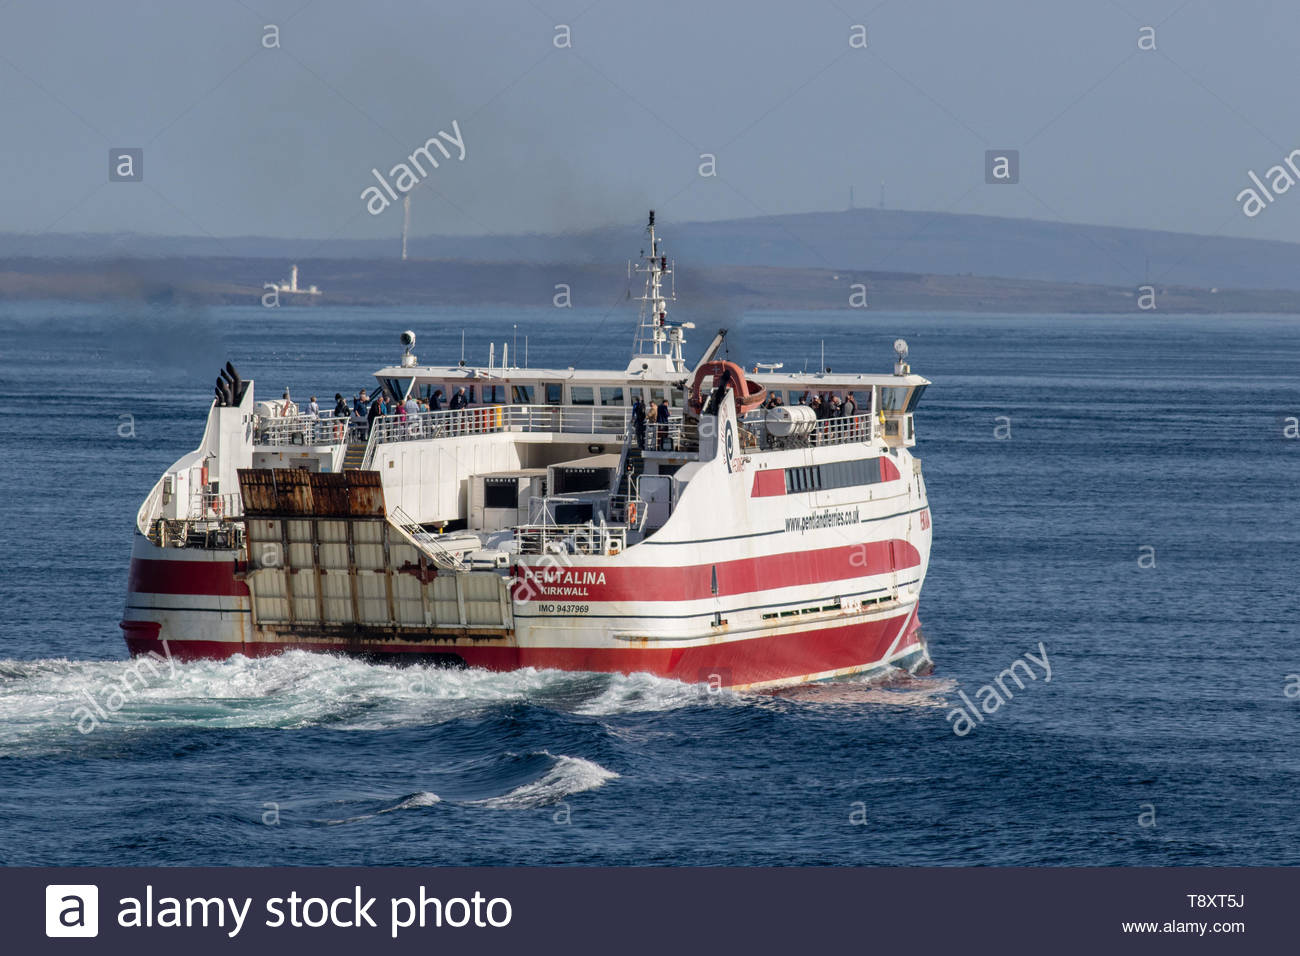 MV Pentalina of Pentland Ferries departing Gills Bay, Caithness, Scotland for St Margarets Hope, Orkney, Scotland - Stock Image